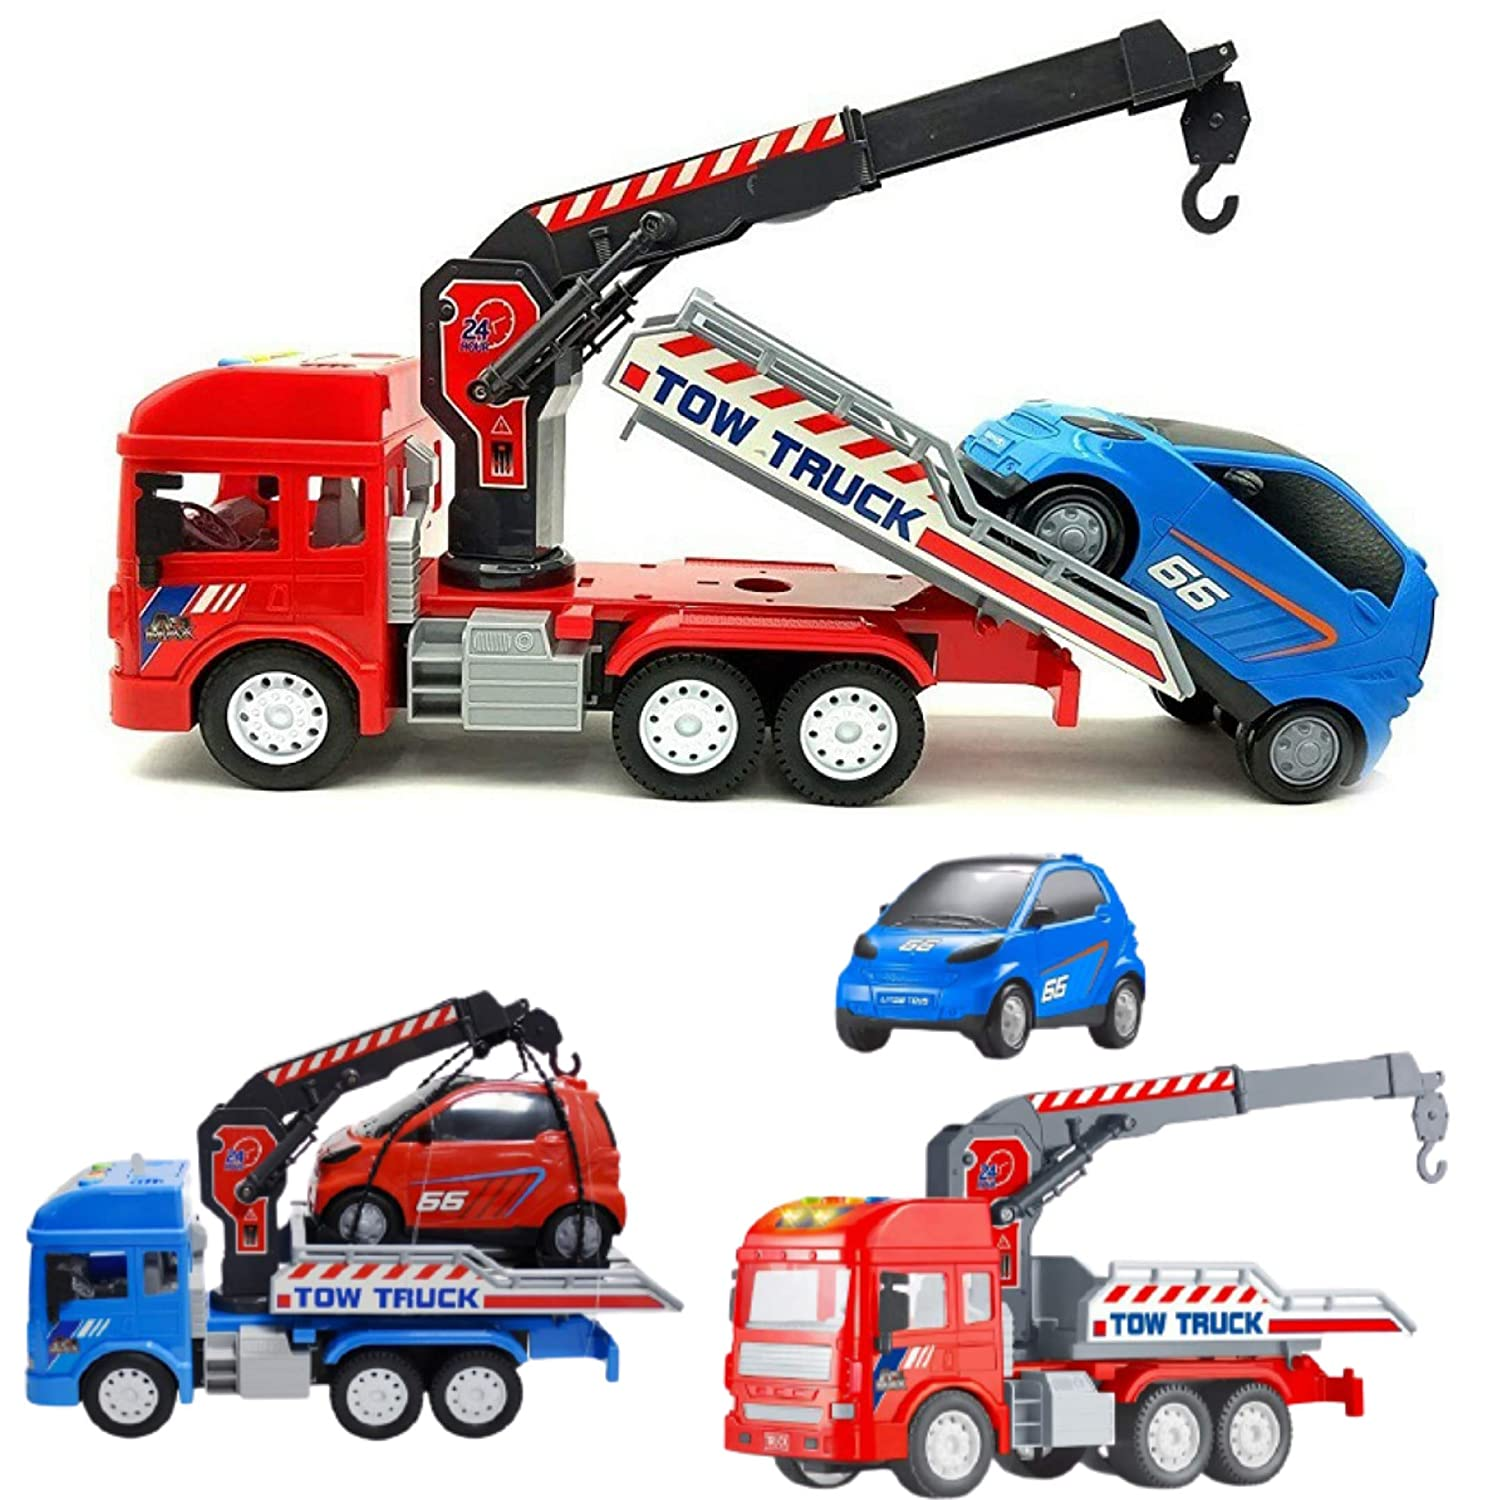 Unbreakable Pull Back Vehicles Crane Toy with car for Kids